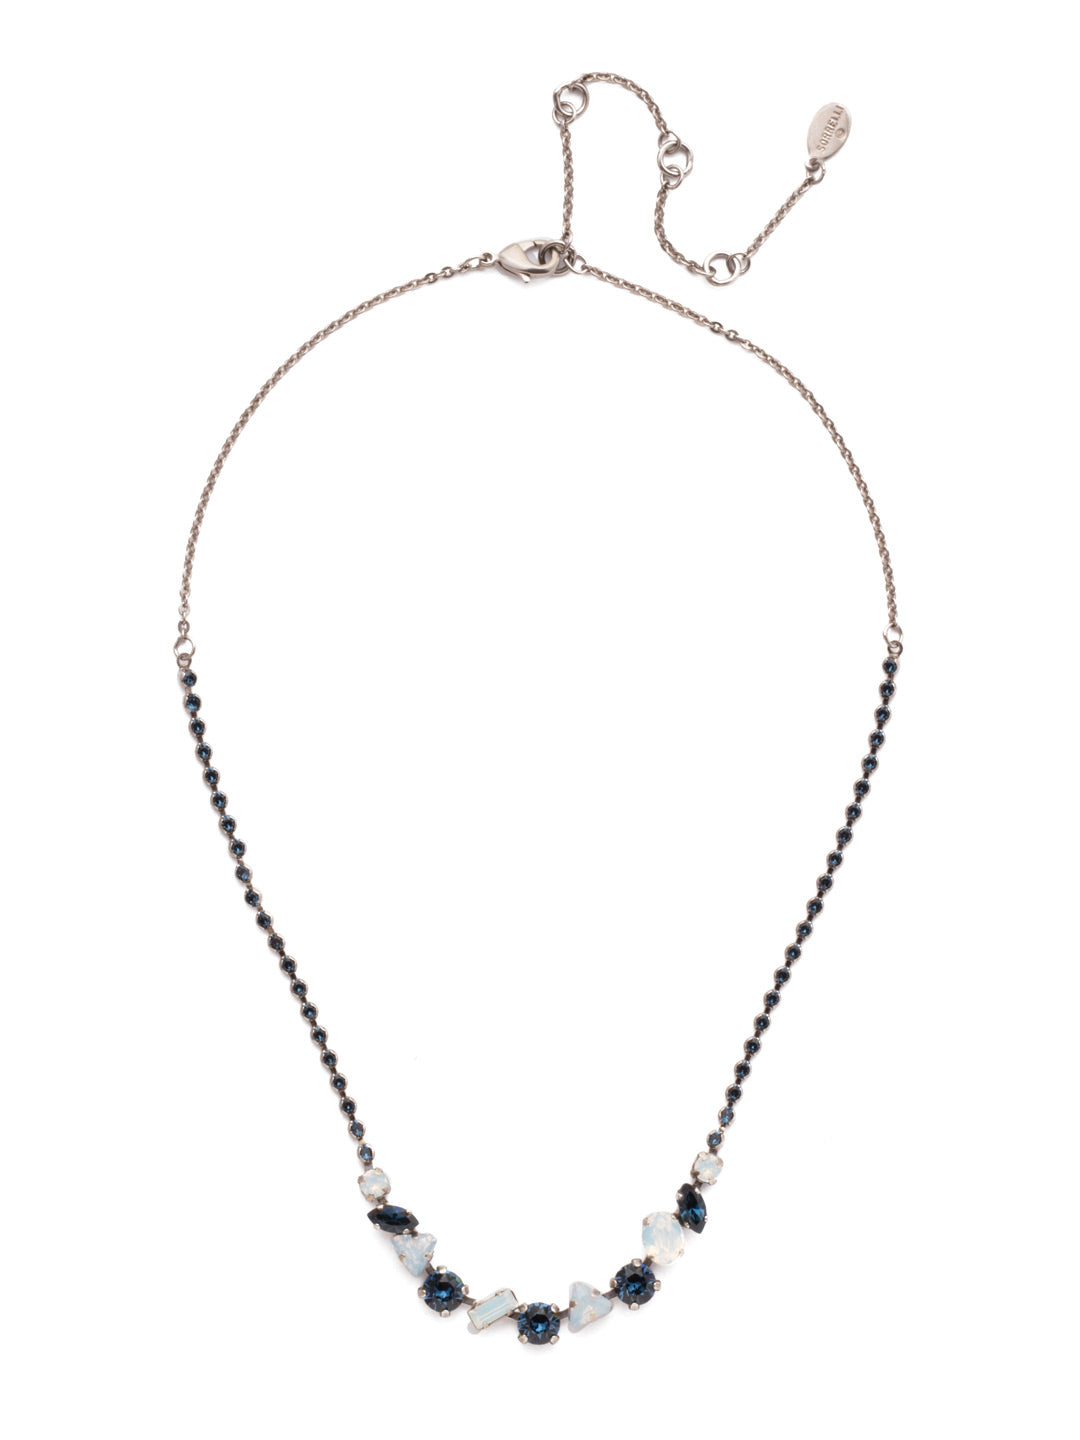 Cherished Tennis Necklace - NEK19ASGBL